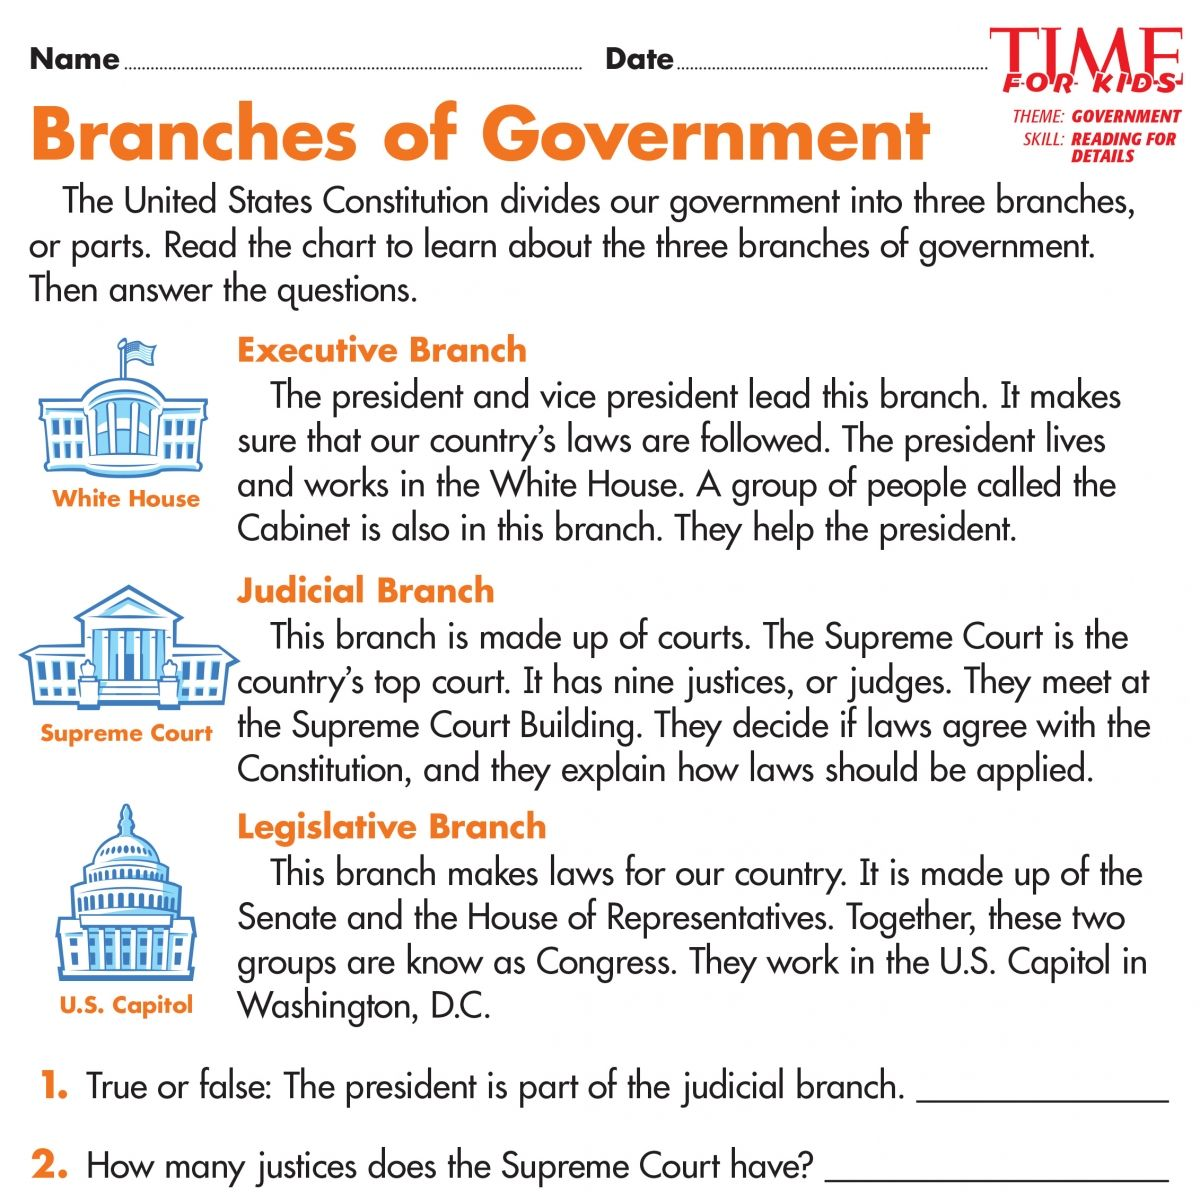 Workbooks types of government worksheets printable : Election Printables | TIME For Kids | Election 2016 | Pinterest ...